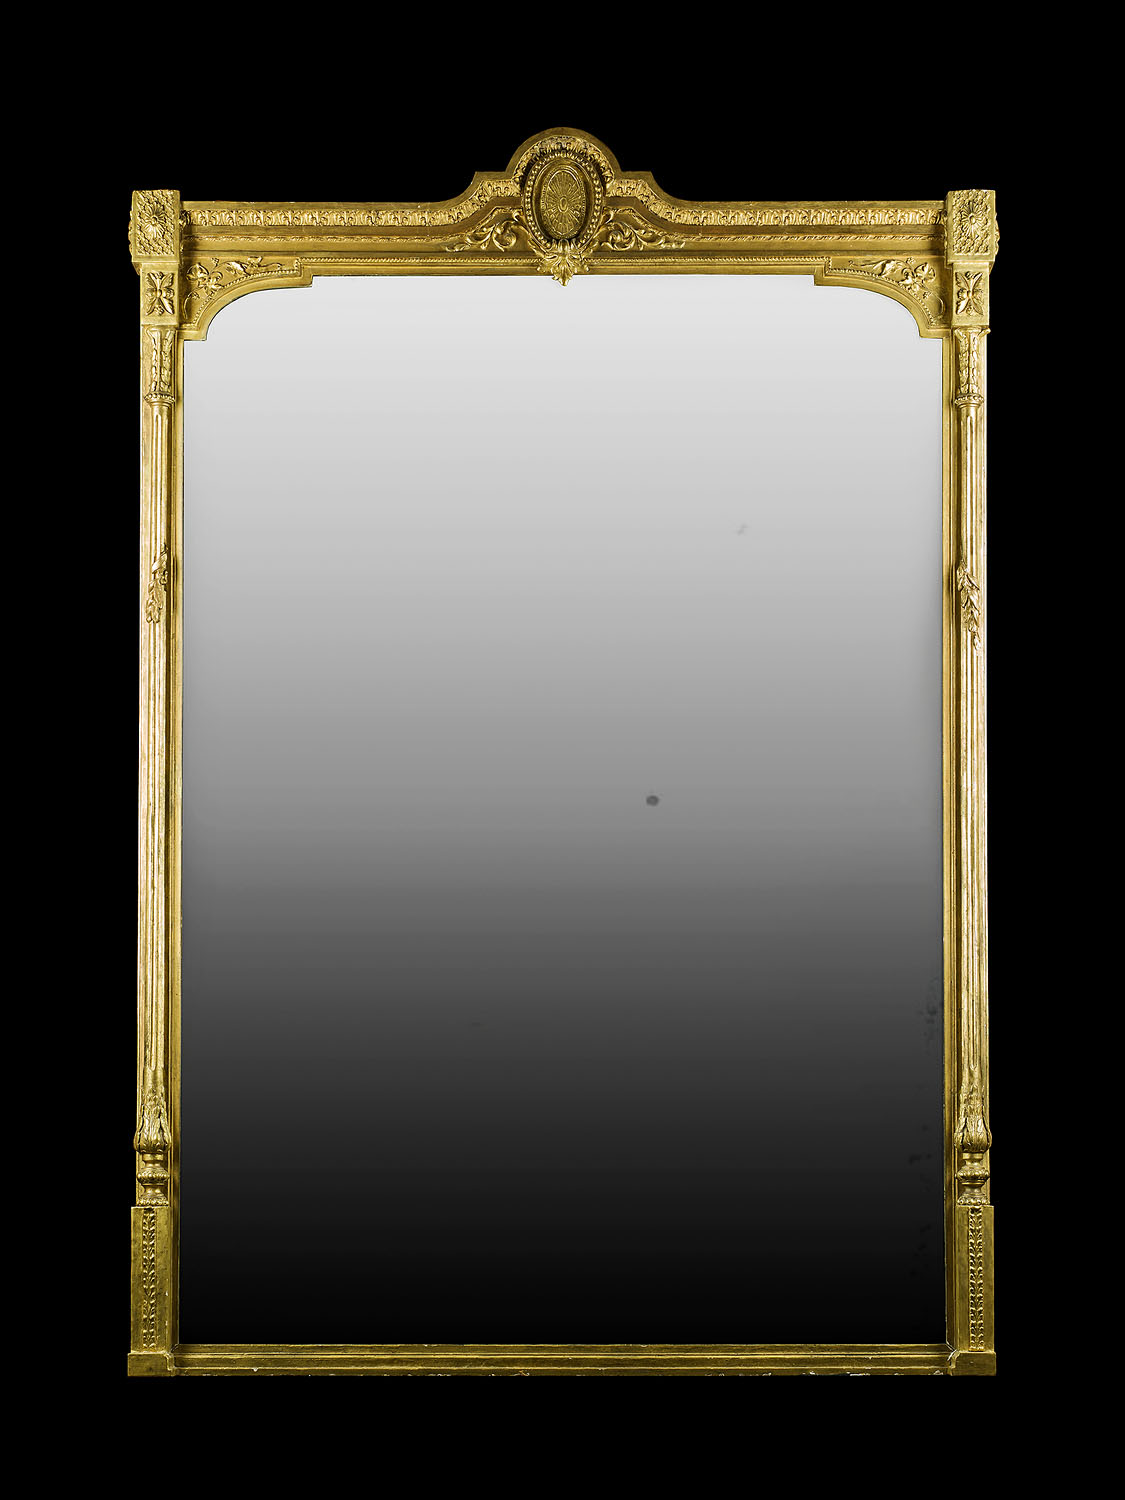 A large antique gilt wood mirror in the Louis XVI manner